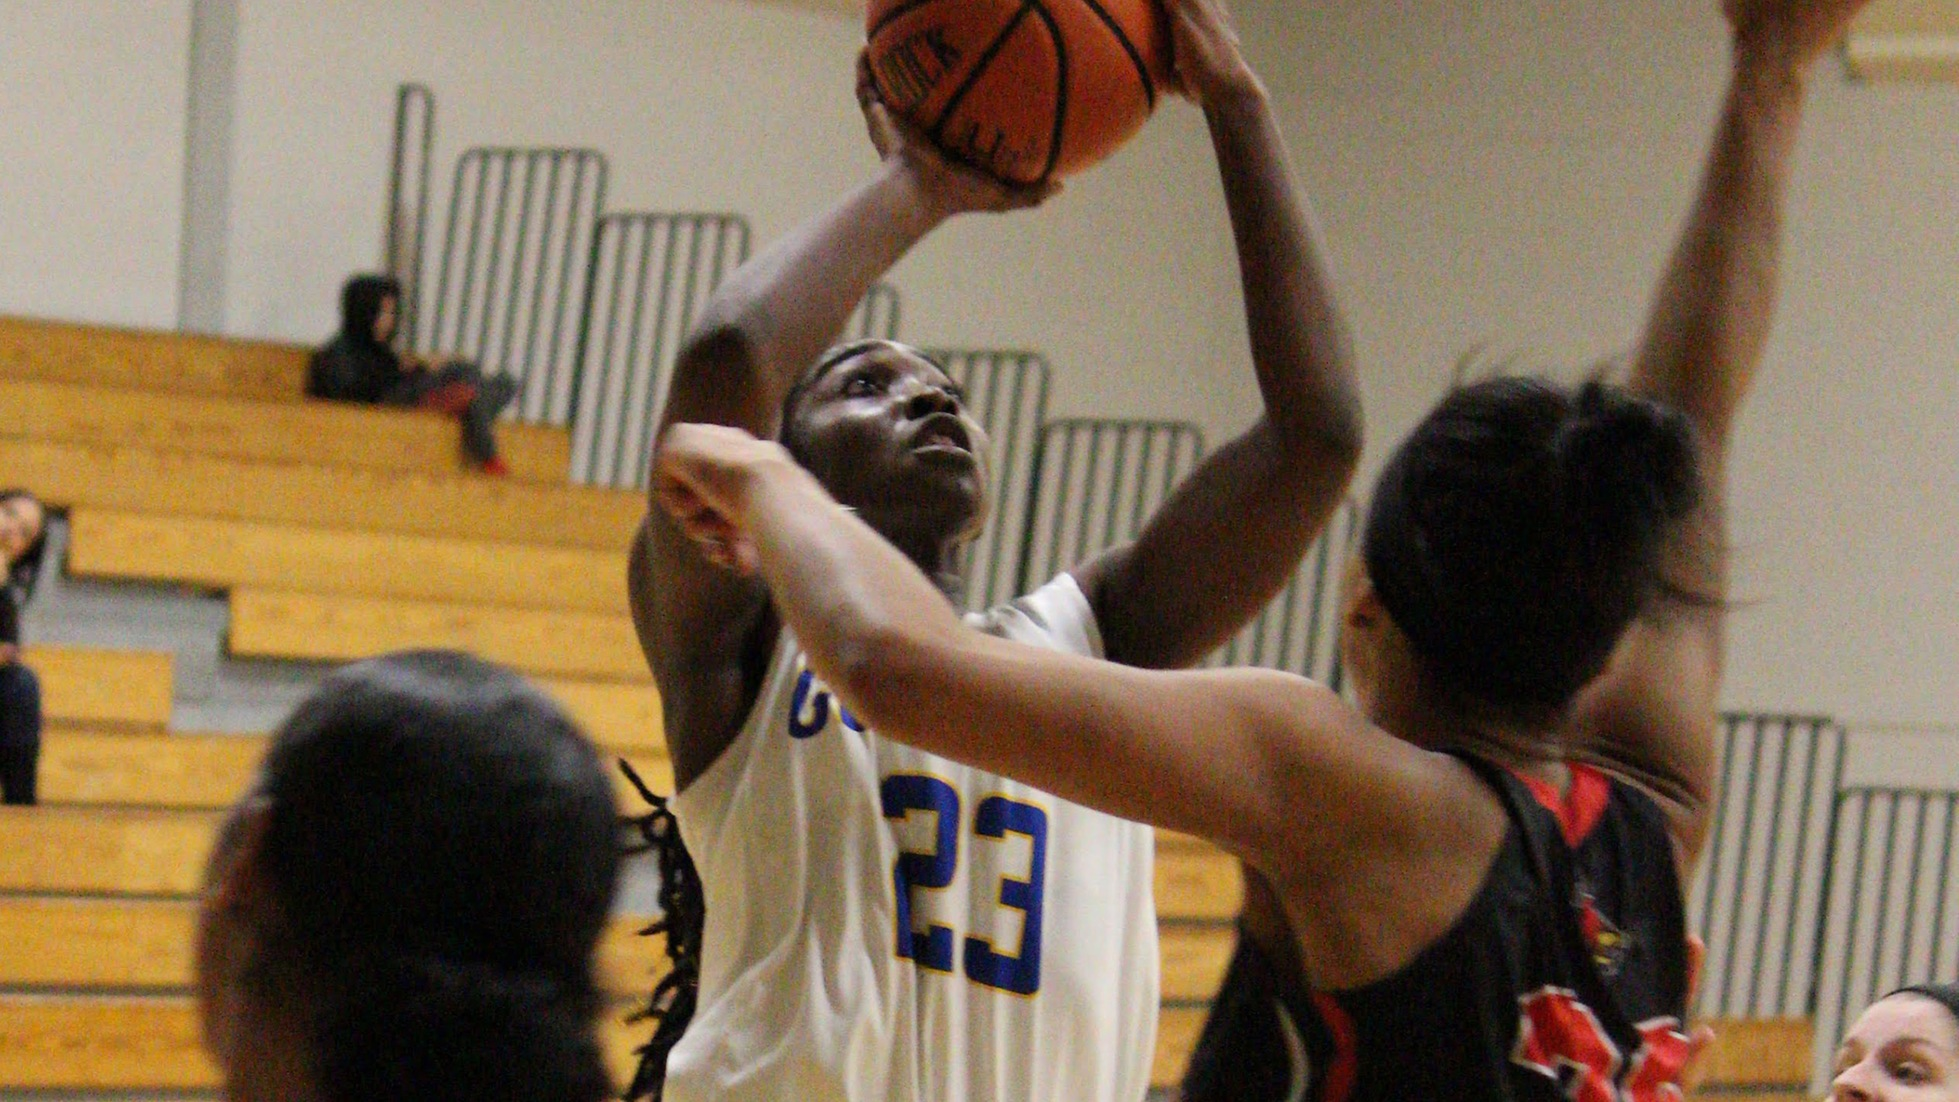 Quarles Has Dominant Performance In Defeat Against Catholic For Goucher Women's Basketball